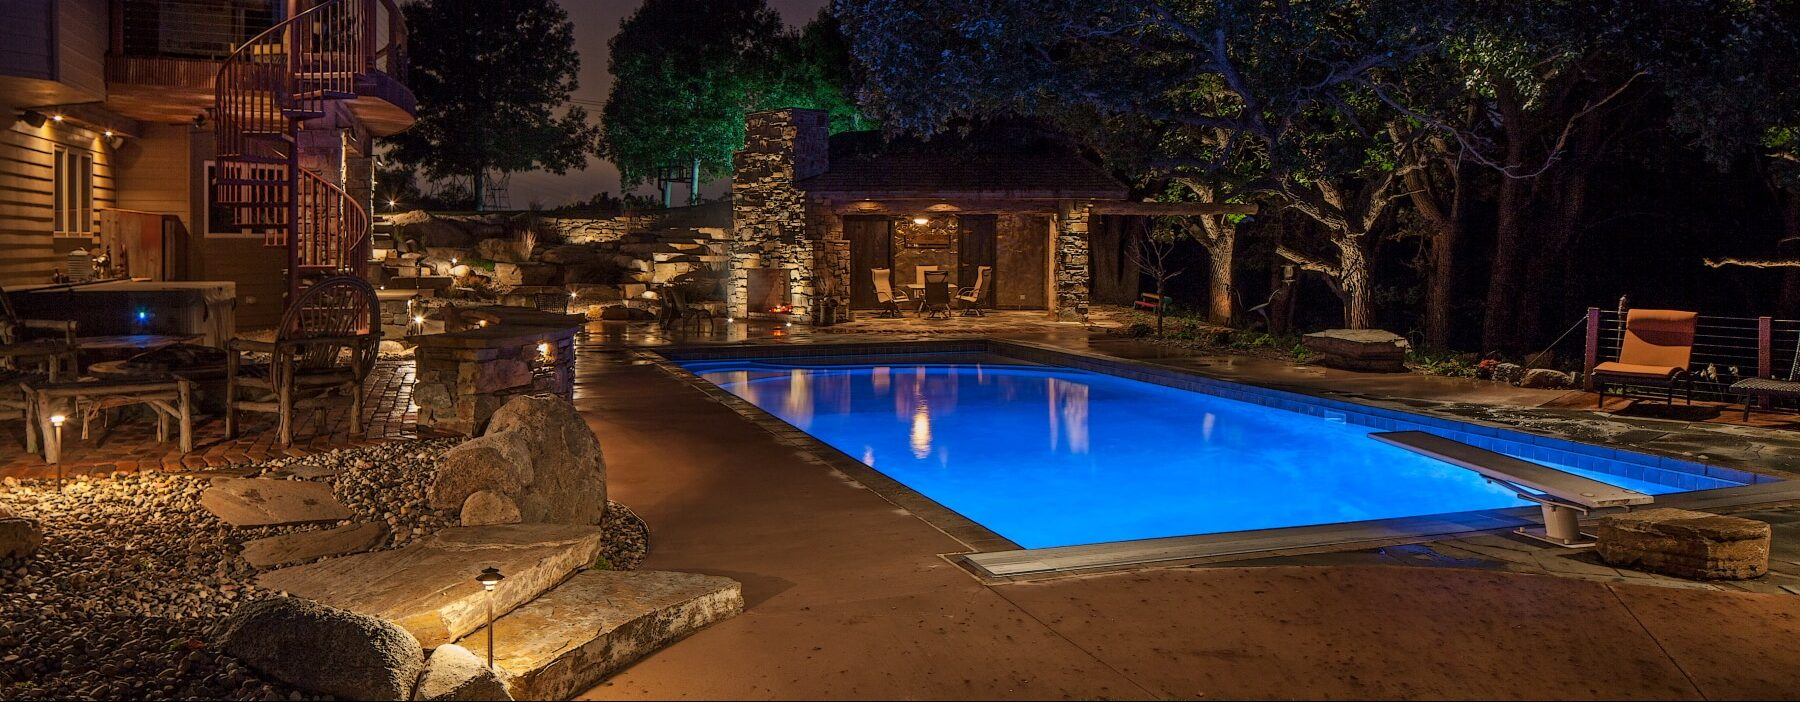 Outdoor Lighting Installer Omaha Nebraska